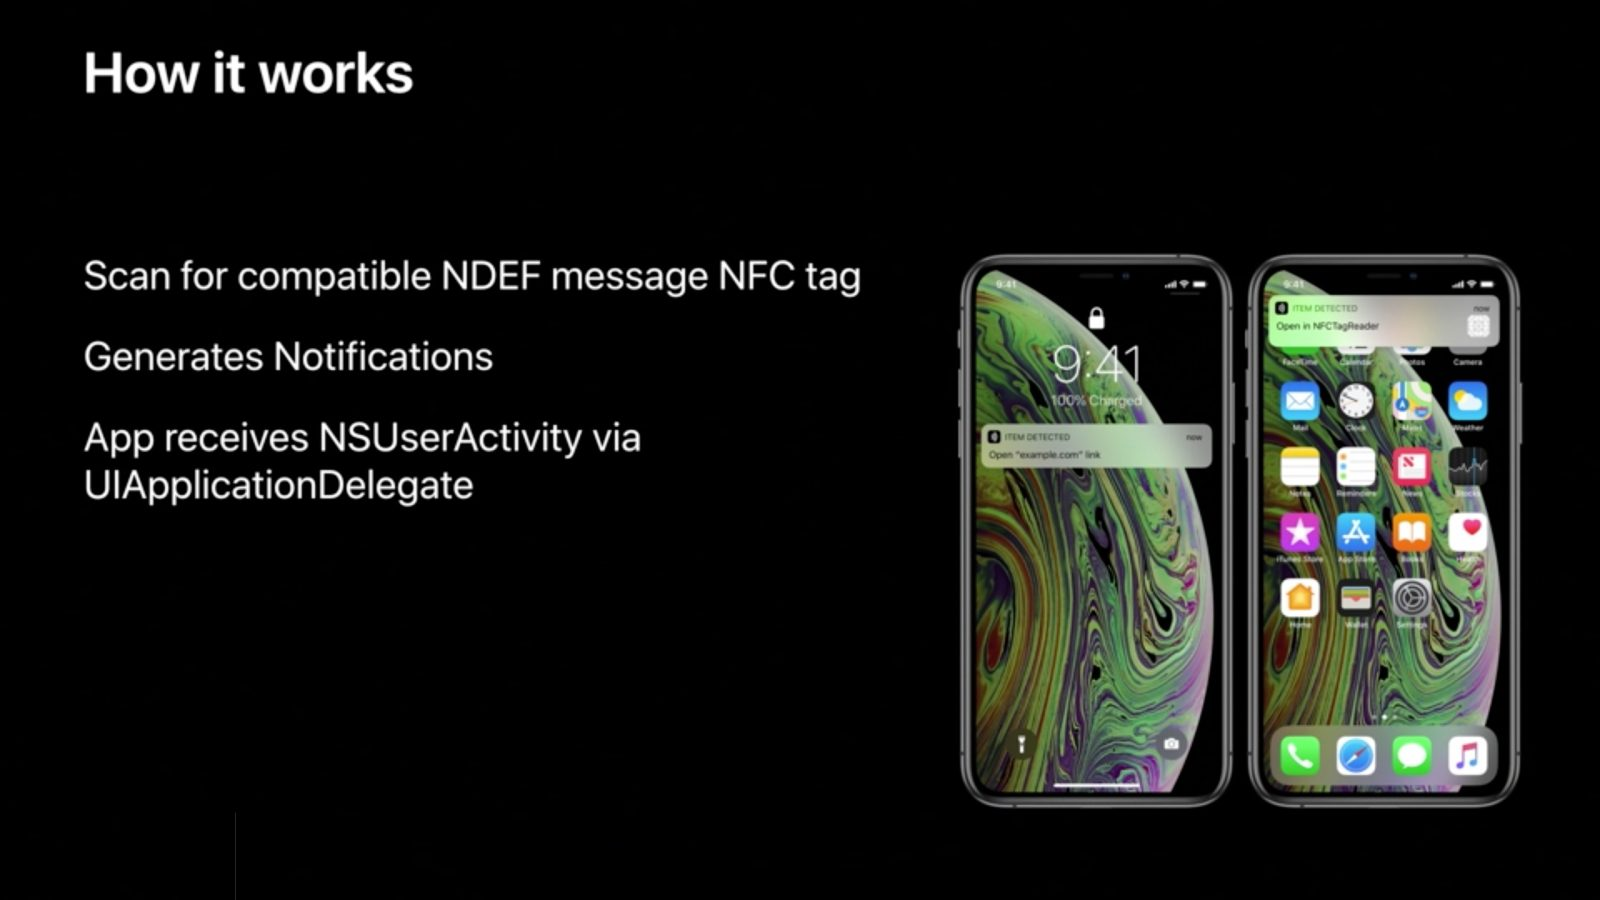 iPhone Xs and iPhone XR can read NFC tags without having to